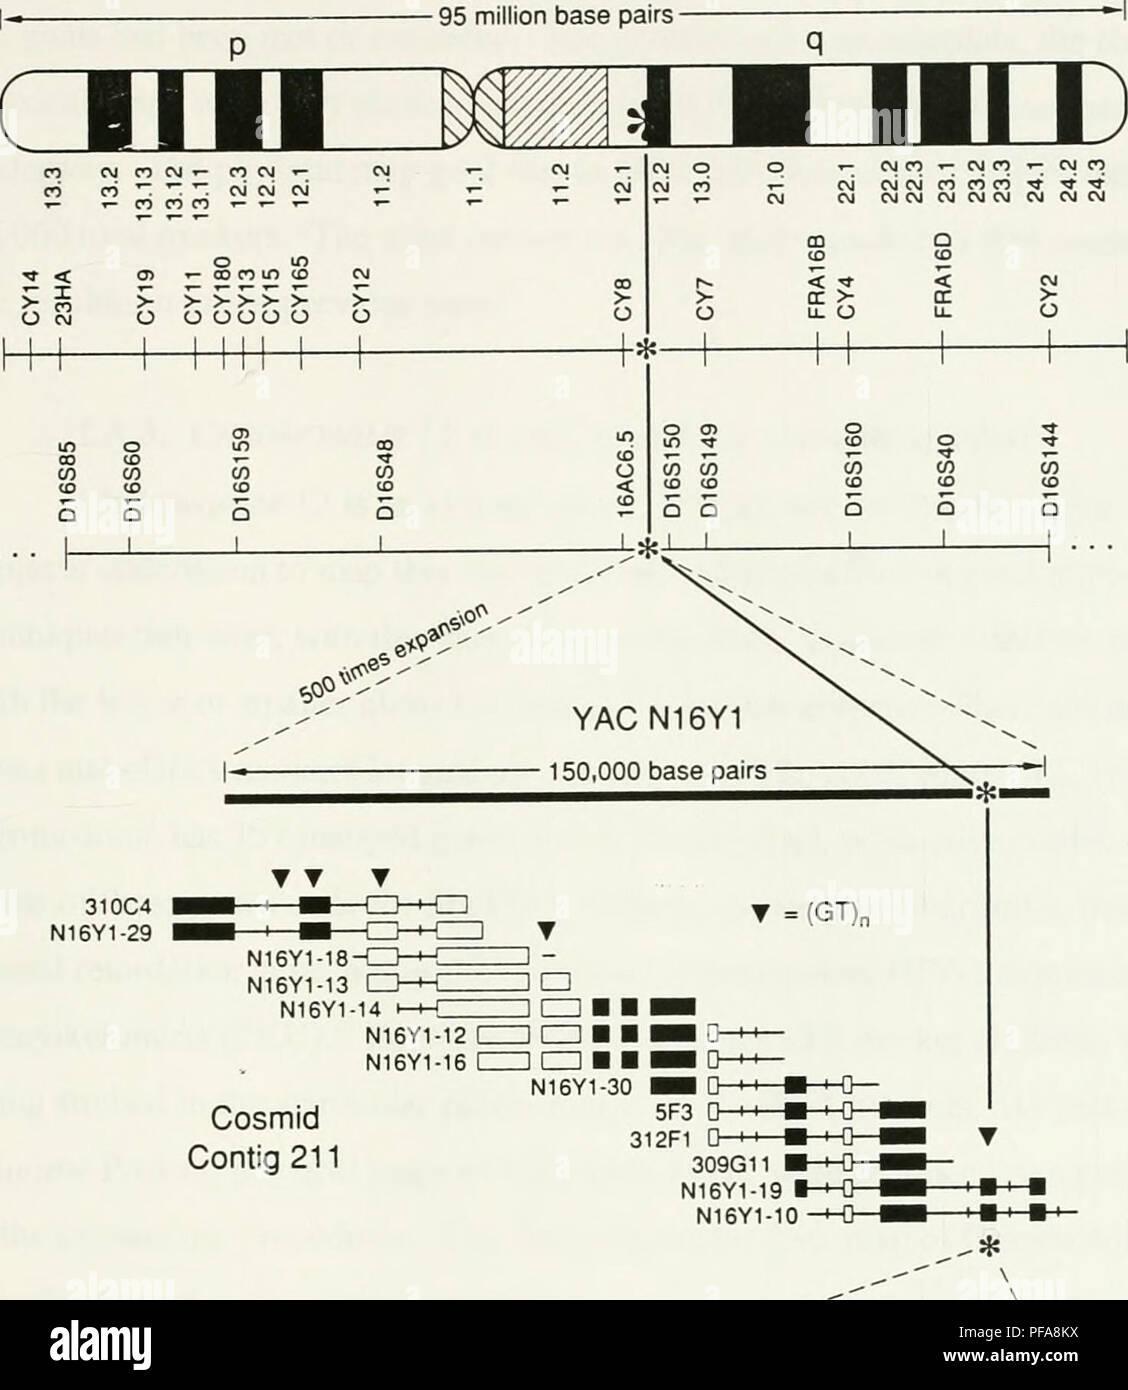 the development of a cosmid map of chromosome 12p13 sweet briar